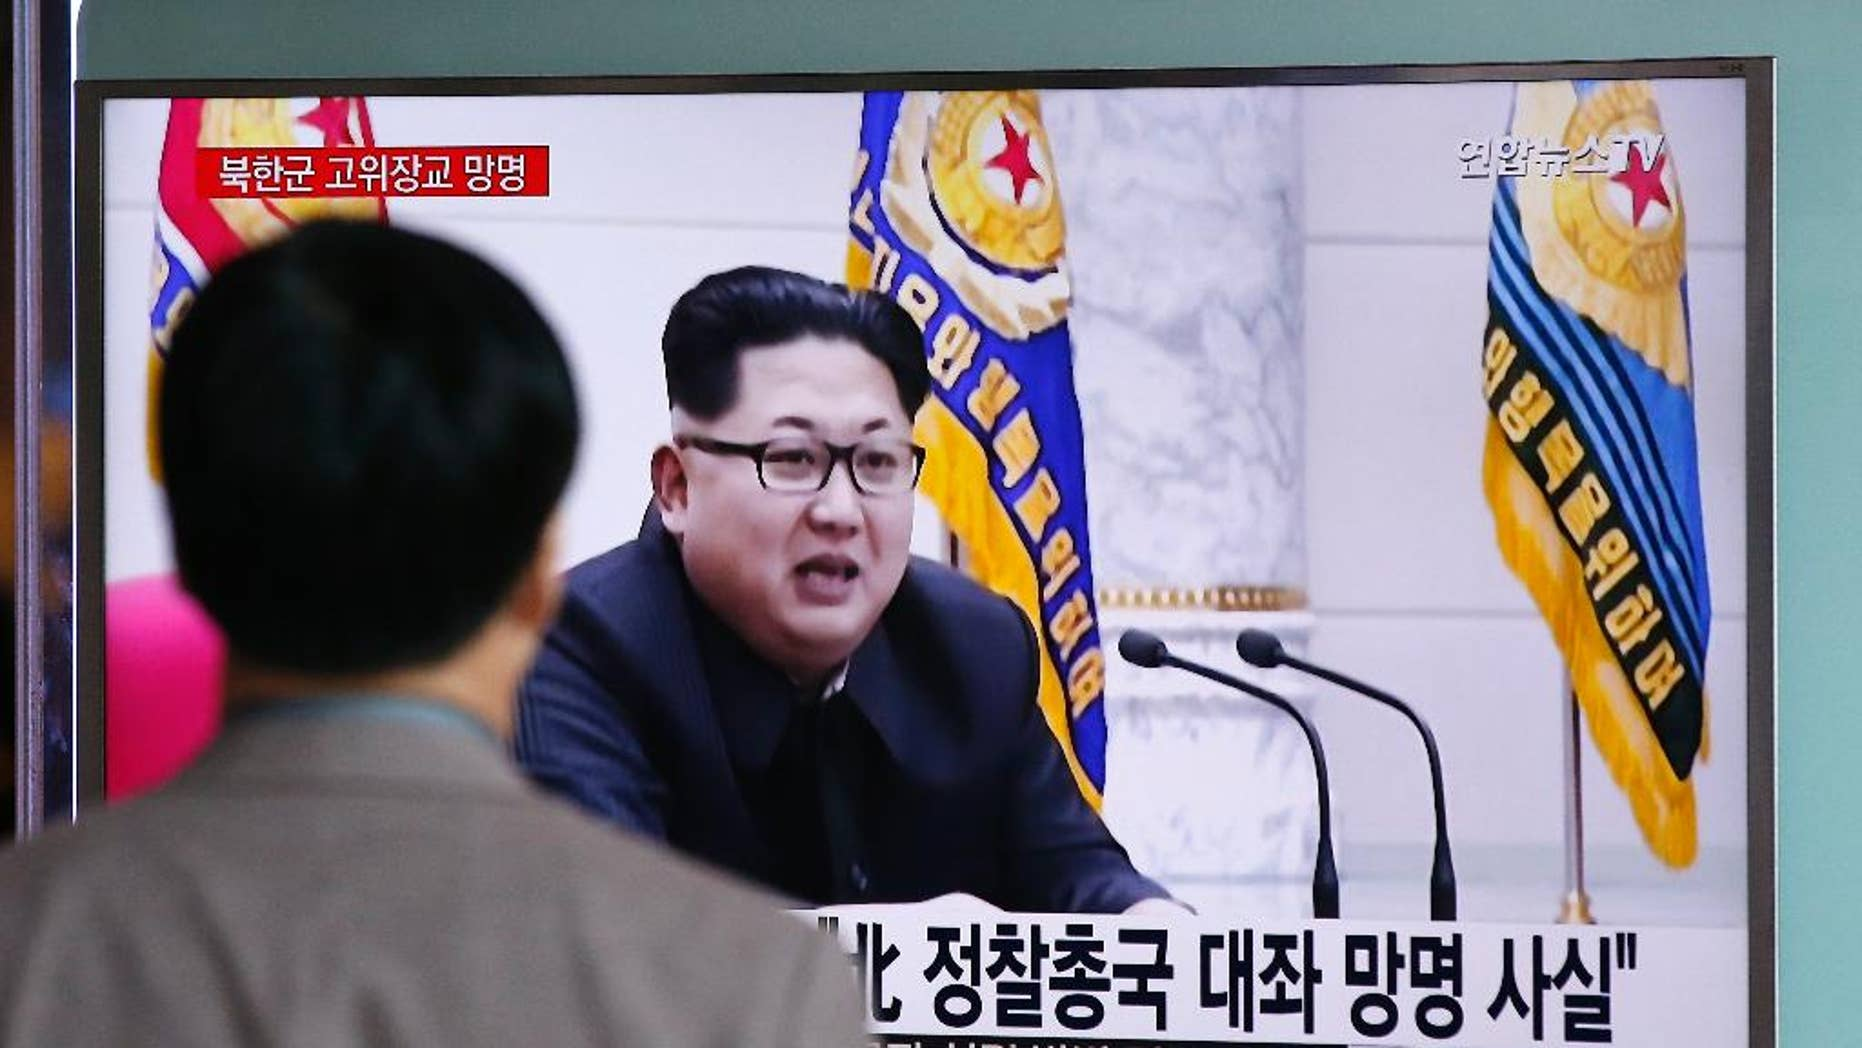 "A man watches a TV news program showing file footage of North Korean leader Kim Jong Un at Seoul Railway Station in Seoul, South Korea, Monday, April 11, 2016. A colonel from North Korea's military spy agency fled to South Korea last year in a rare senior-level defection, Seoul officials said Monday. The letters read ""True, A colonel from North Korean military's General Reconnaissance Bureau Asylum."" (AP Photo/Lee Jin-man)"